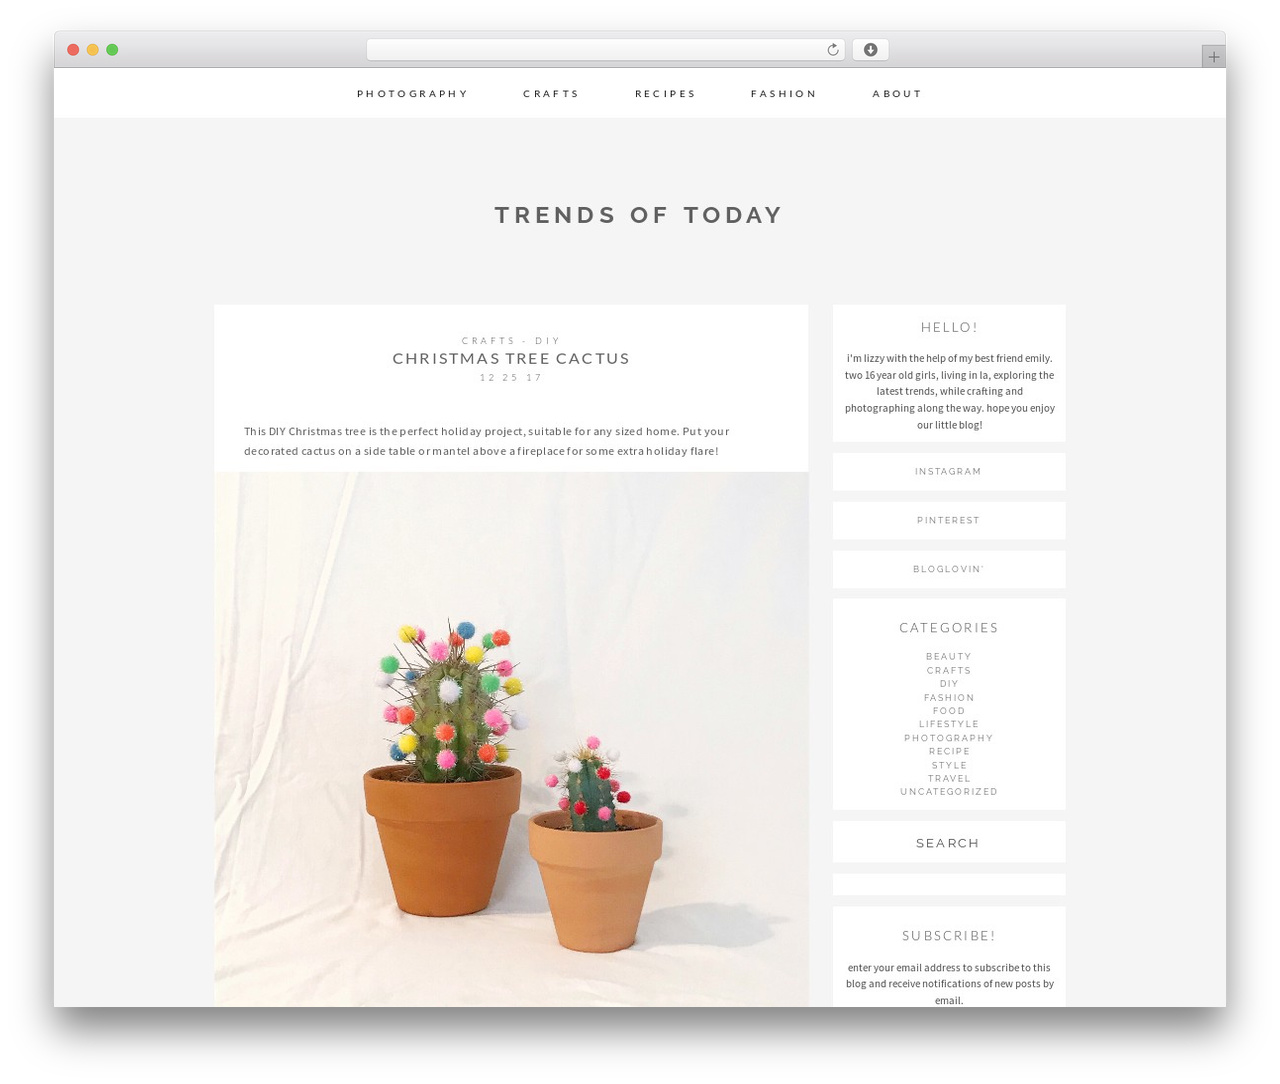 mell WordPress template - trends-of-today.com